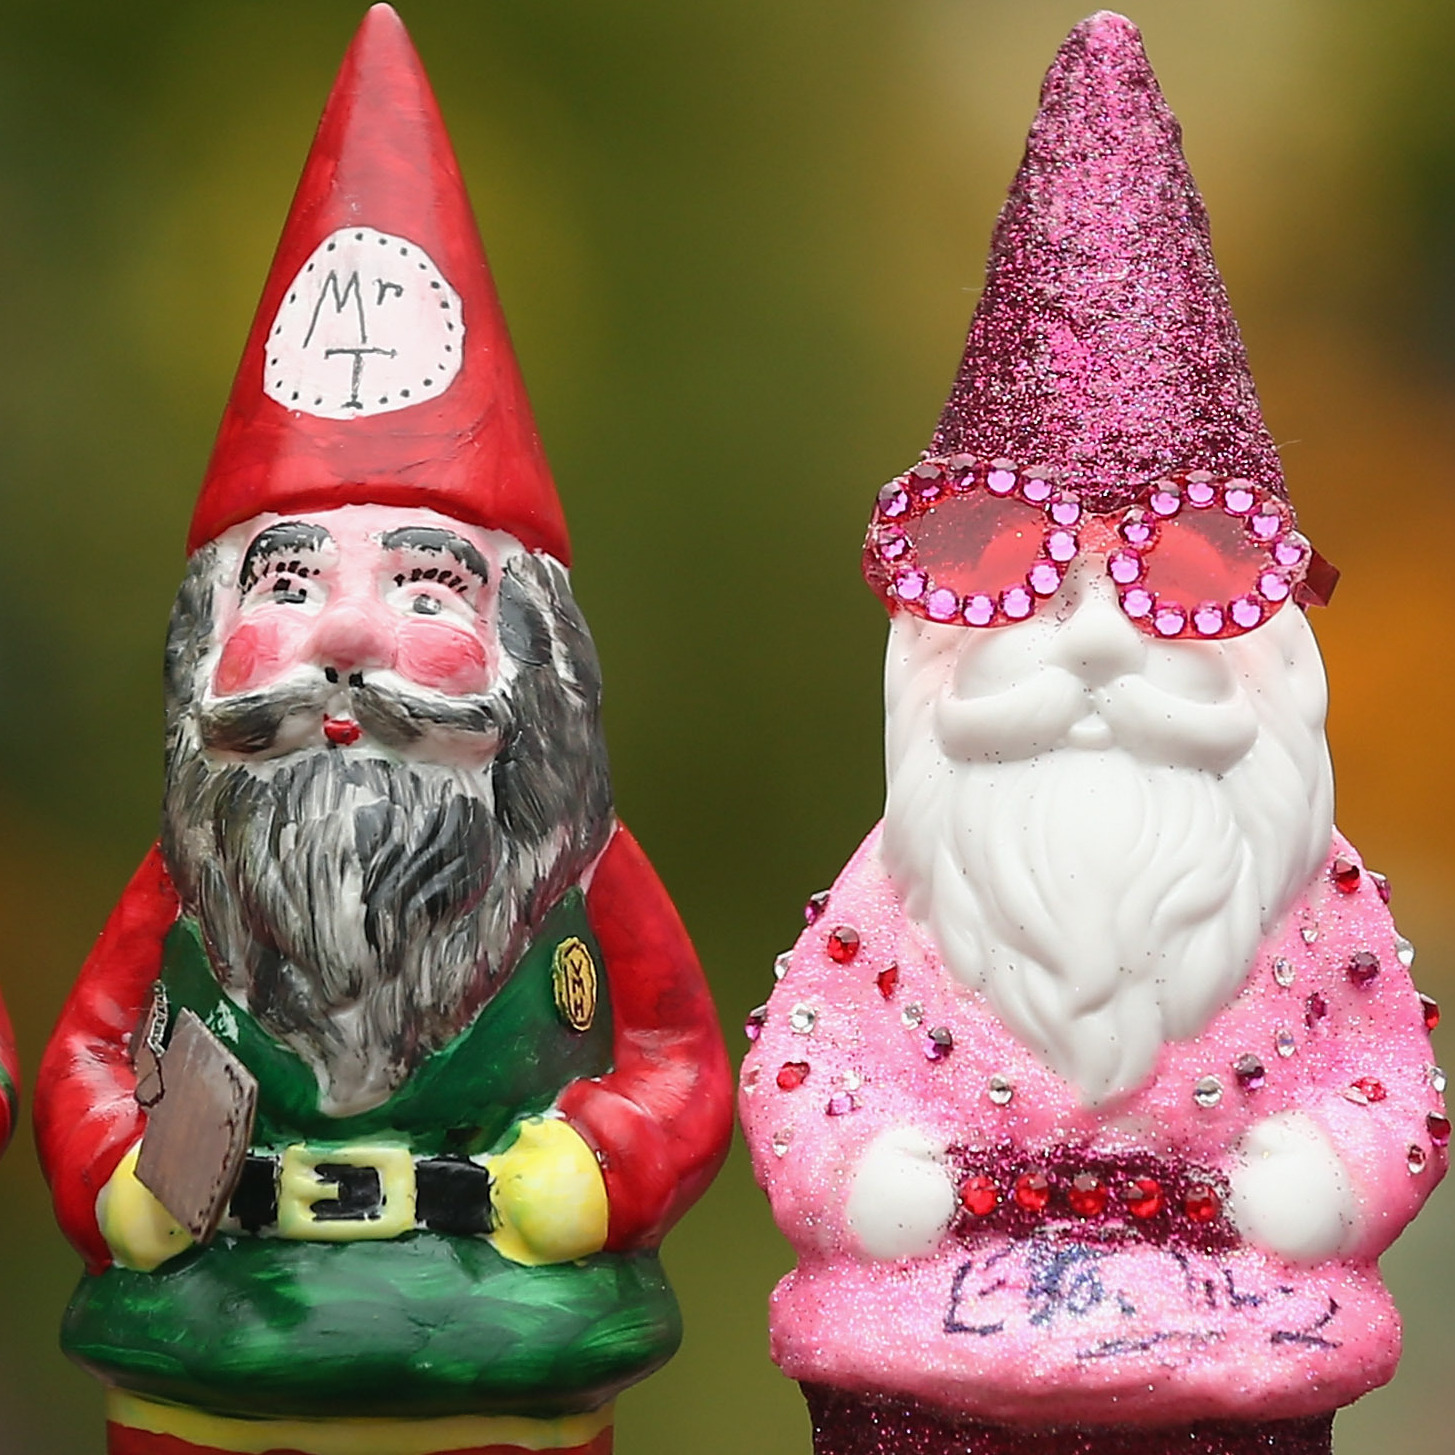 Decorated gnomes designed by celebrities, including Elton John (second from the right), are displayed at Chelsea Flower Show on Monday in London.